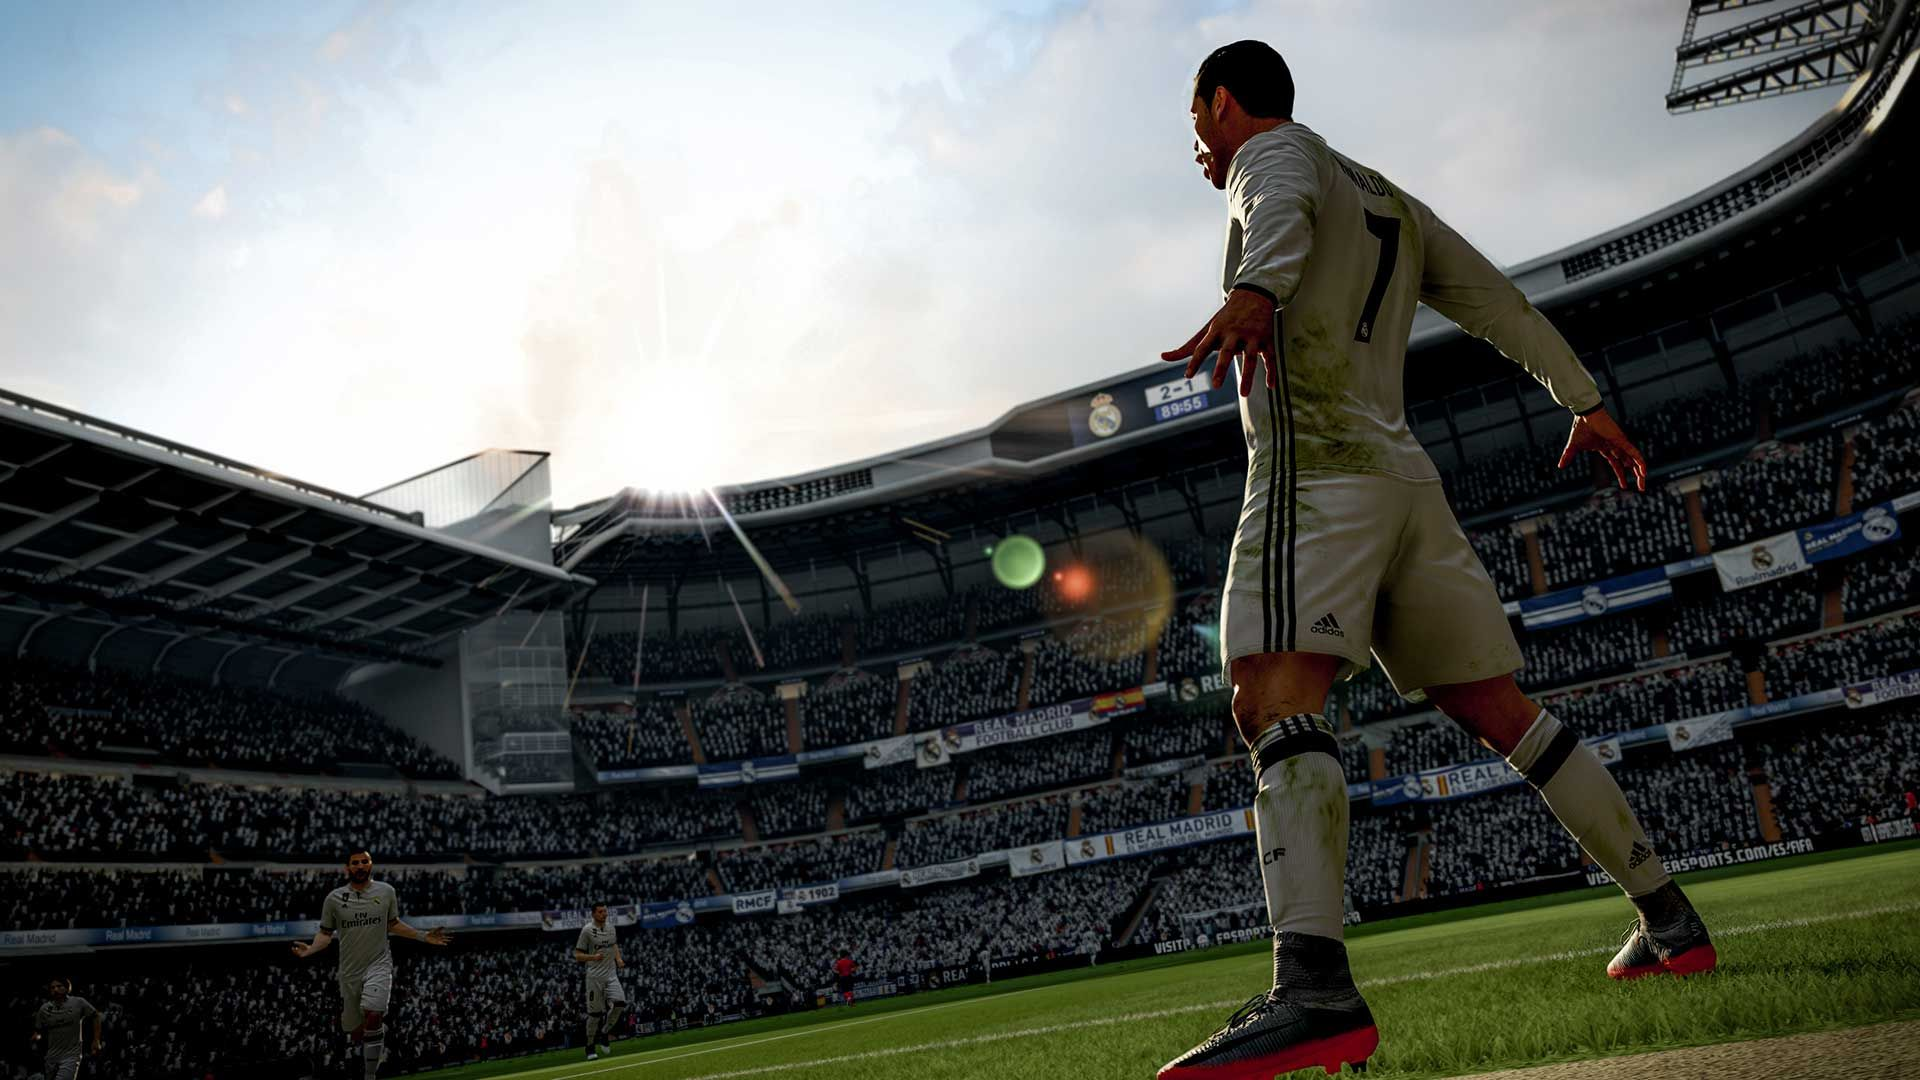 FIFA 18 Preview - What's New This Year?